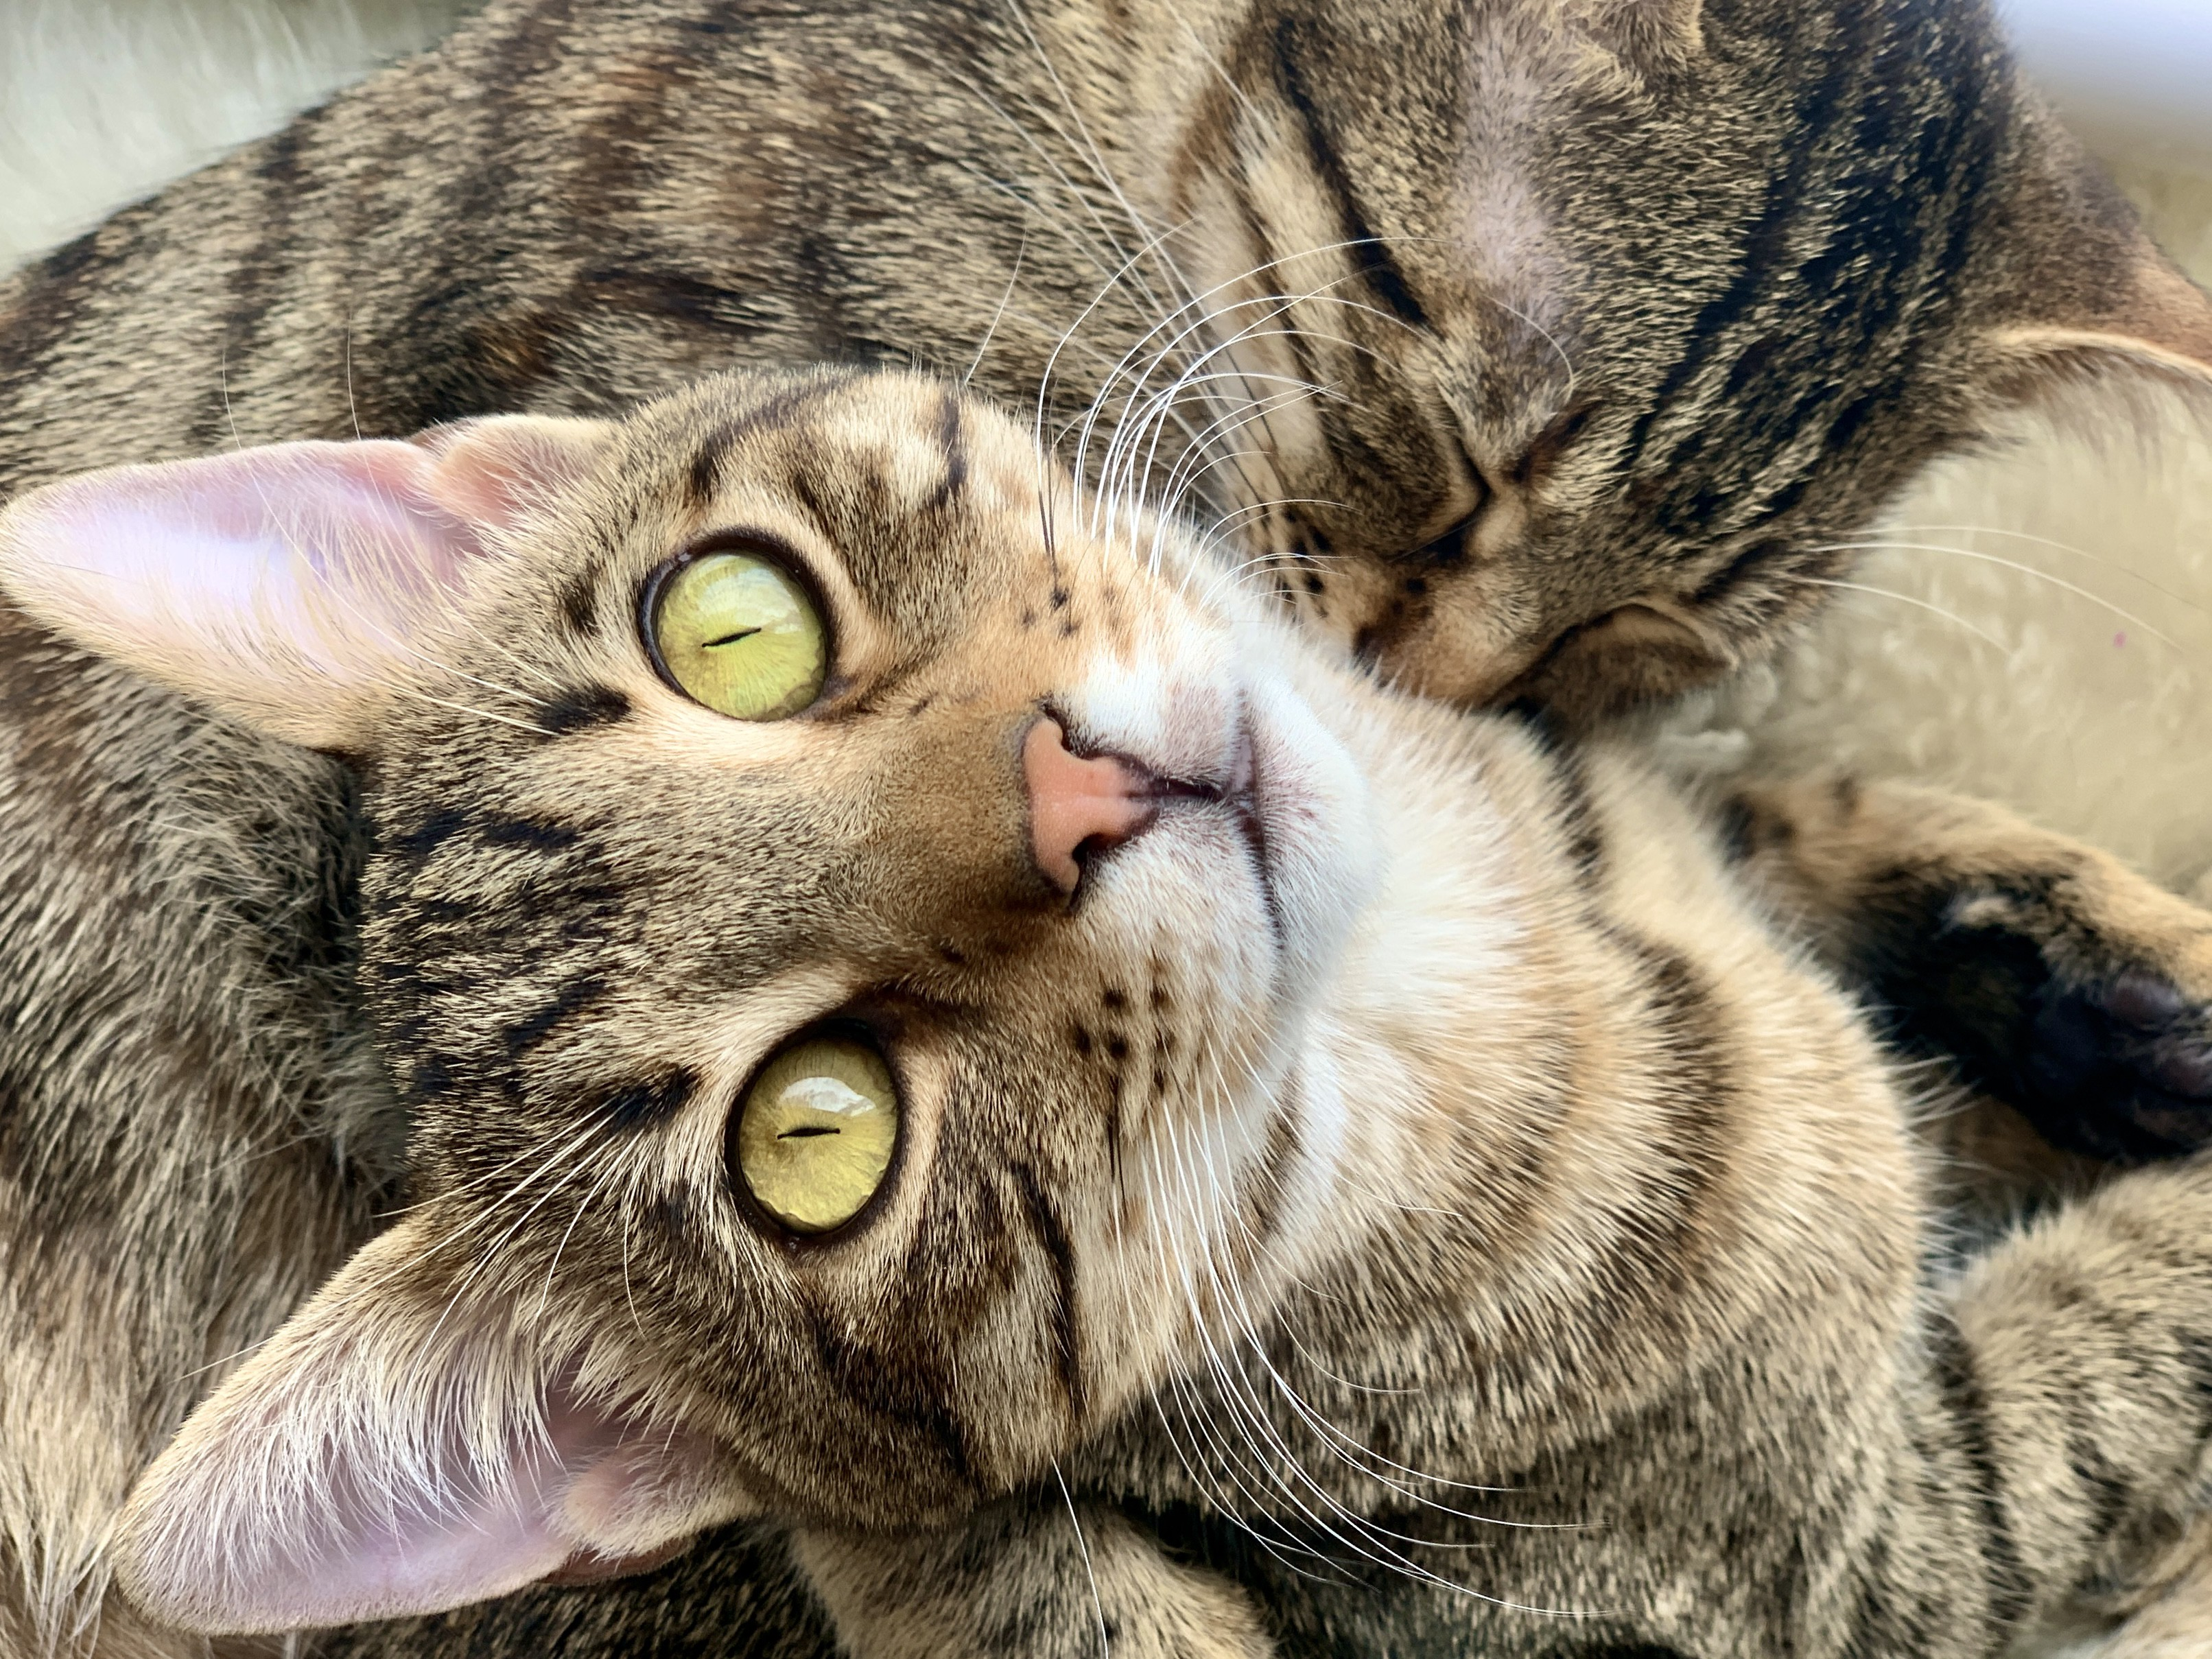 Two cats snuggling, with one facing camera